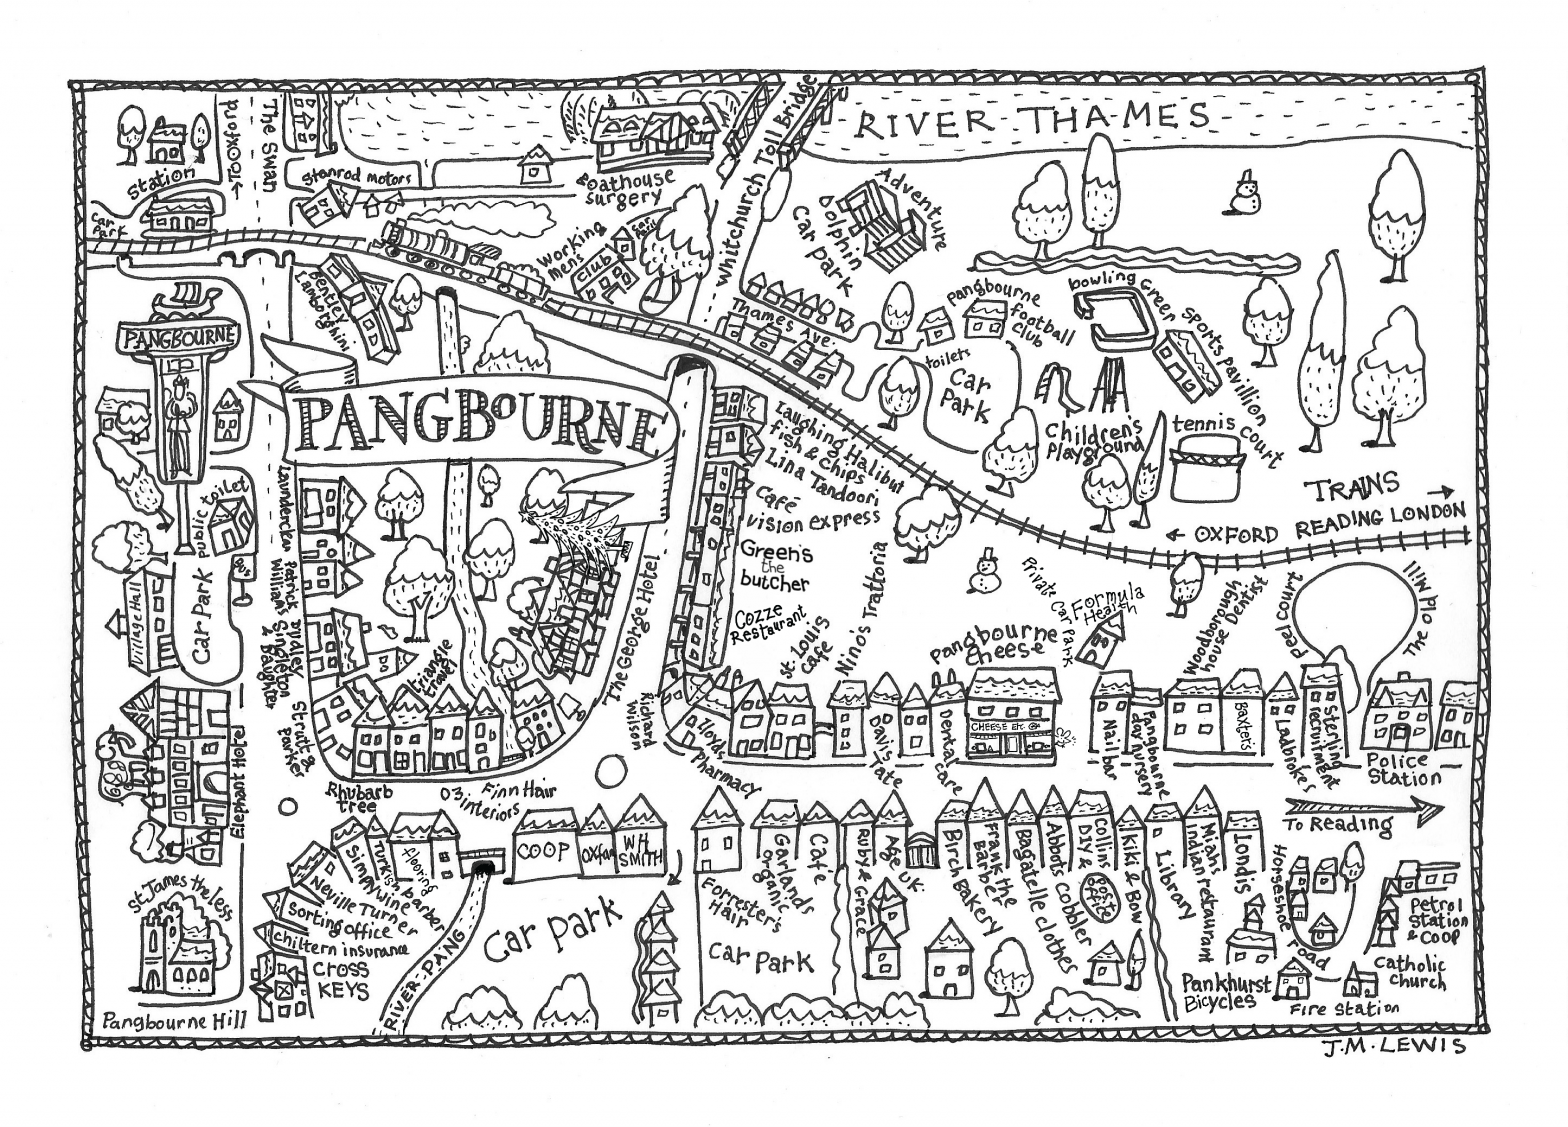 Christmas map of Pangbourne, Berkshire (Artist: Jan Lewis)